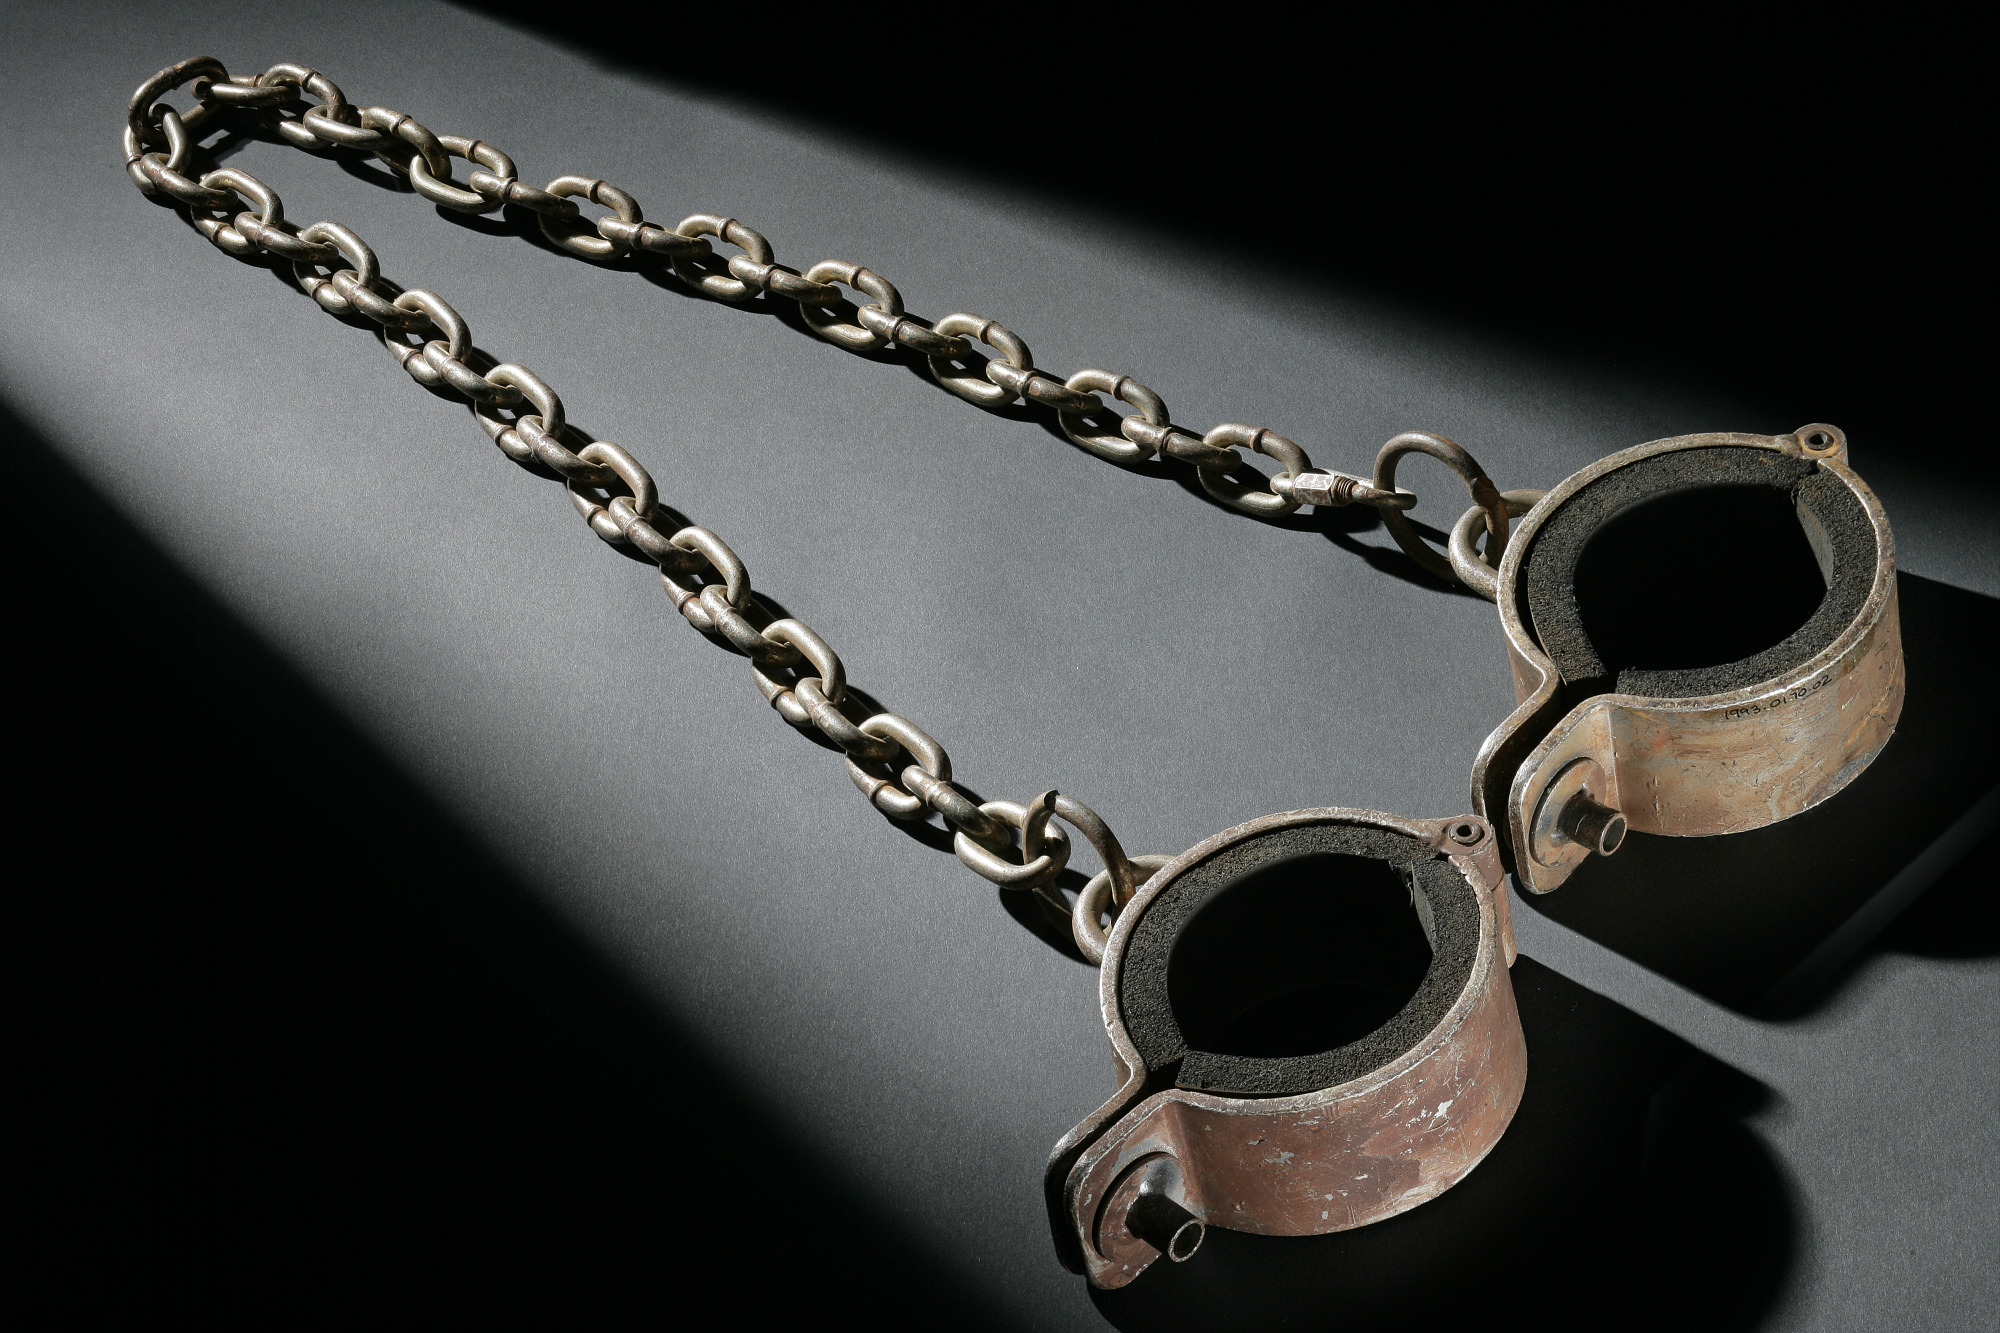 images for Kunta Kinte's Manacles